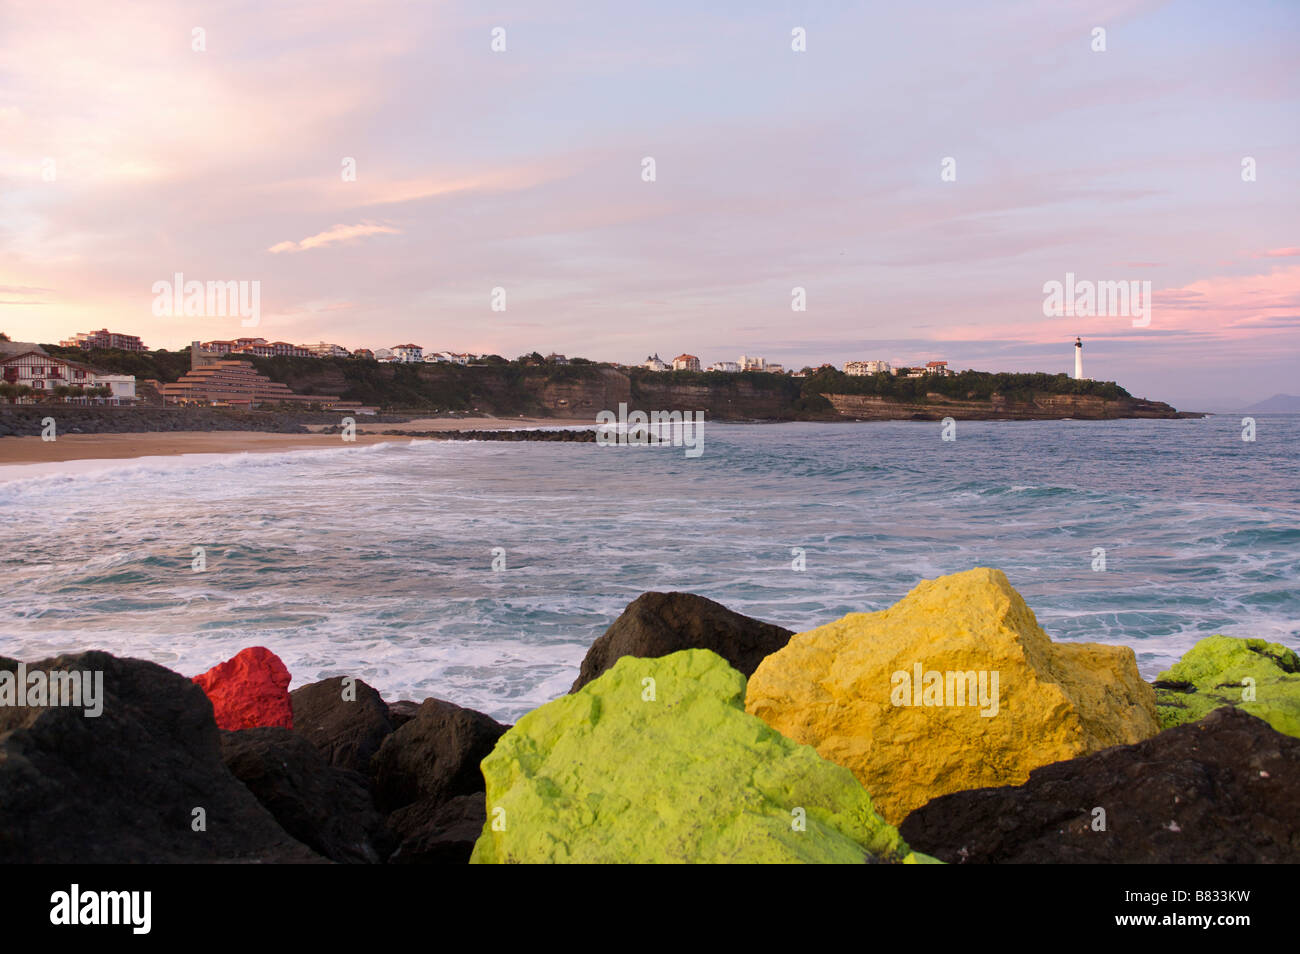 Chambre D Amour Dawn On The Chambre D Amour Beach In Anglet France Stock Photo